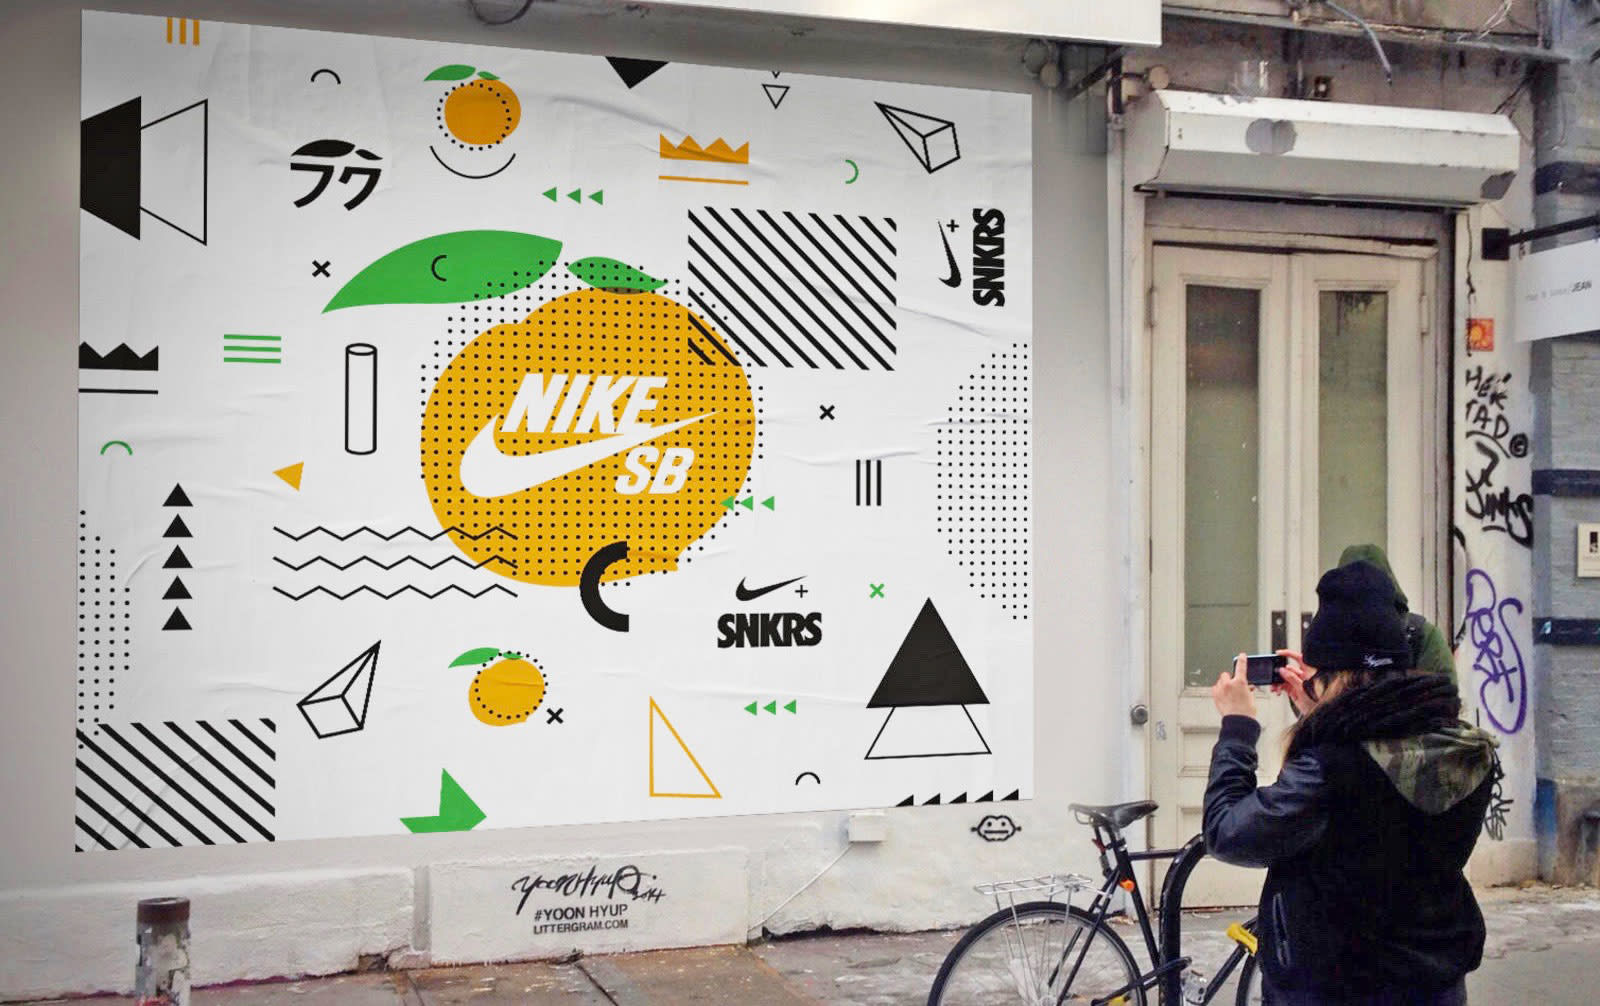 Nike's secret weapon against sneaker bots: Augmented reality